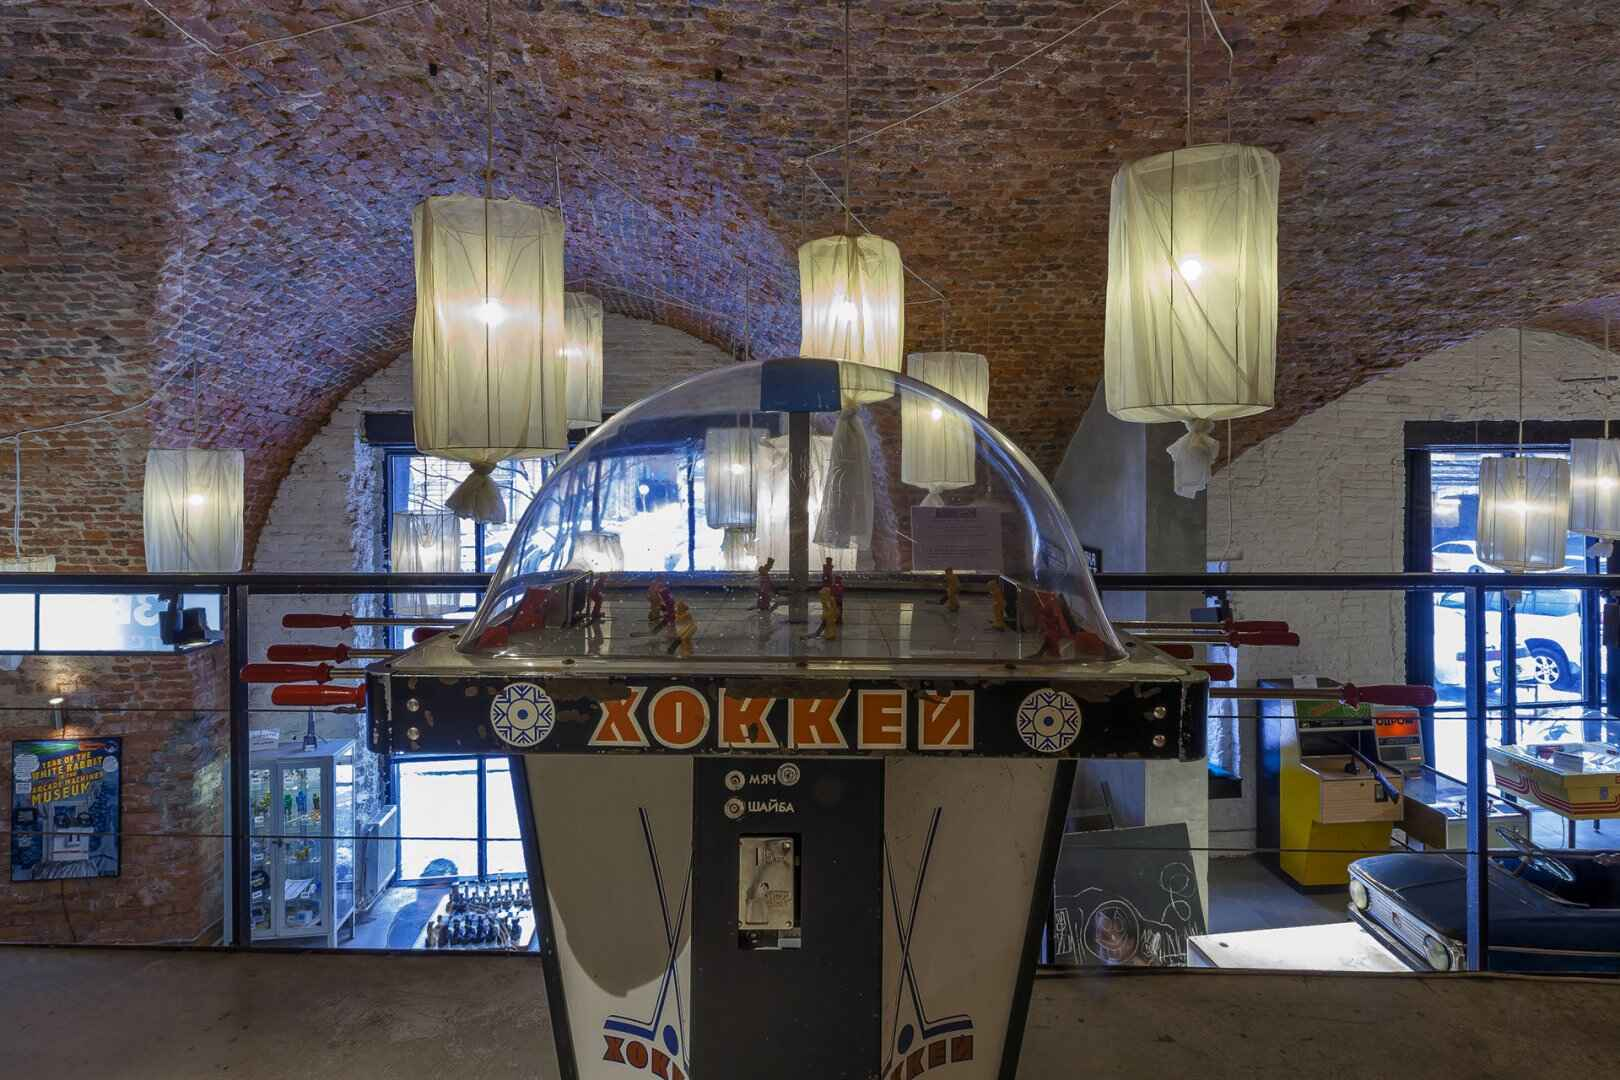 : Museum of Soviet arcade machines in Saint Petersburg. St. Petersburg City Pass, Фото 8